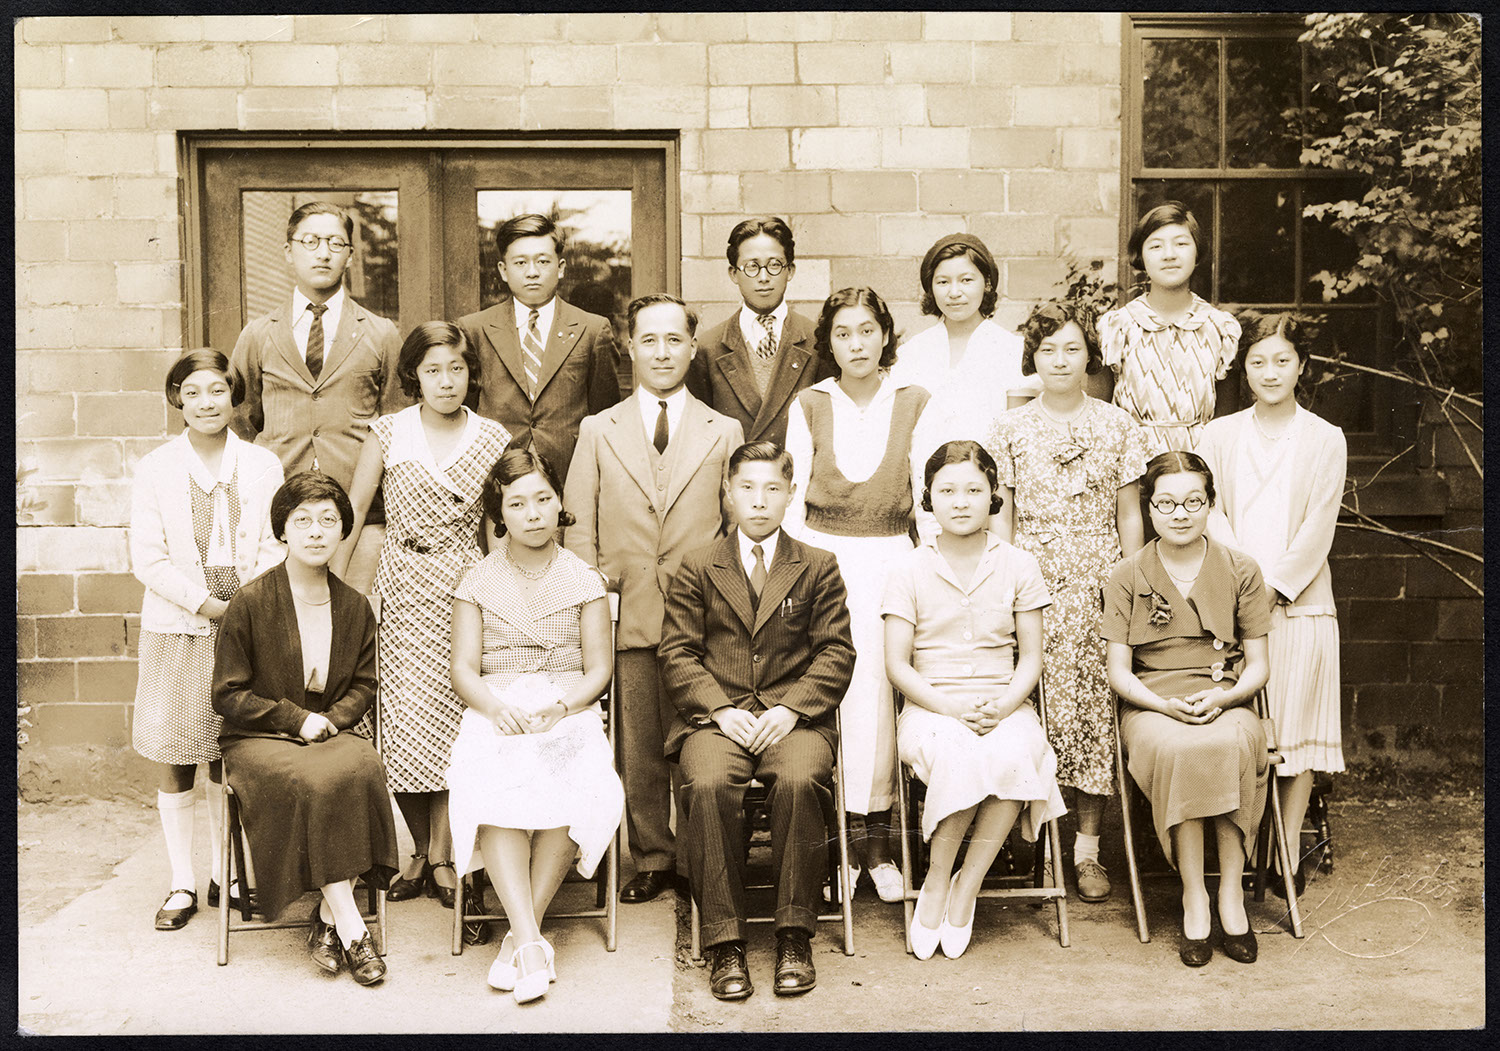 Rev. K. Shimizu with young people in front of Powell Street gymnasium